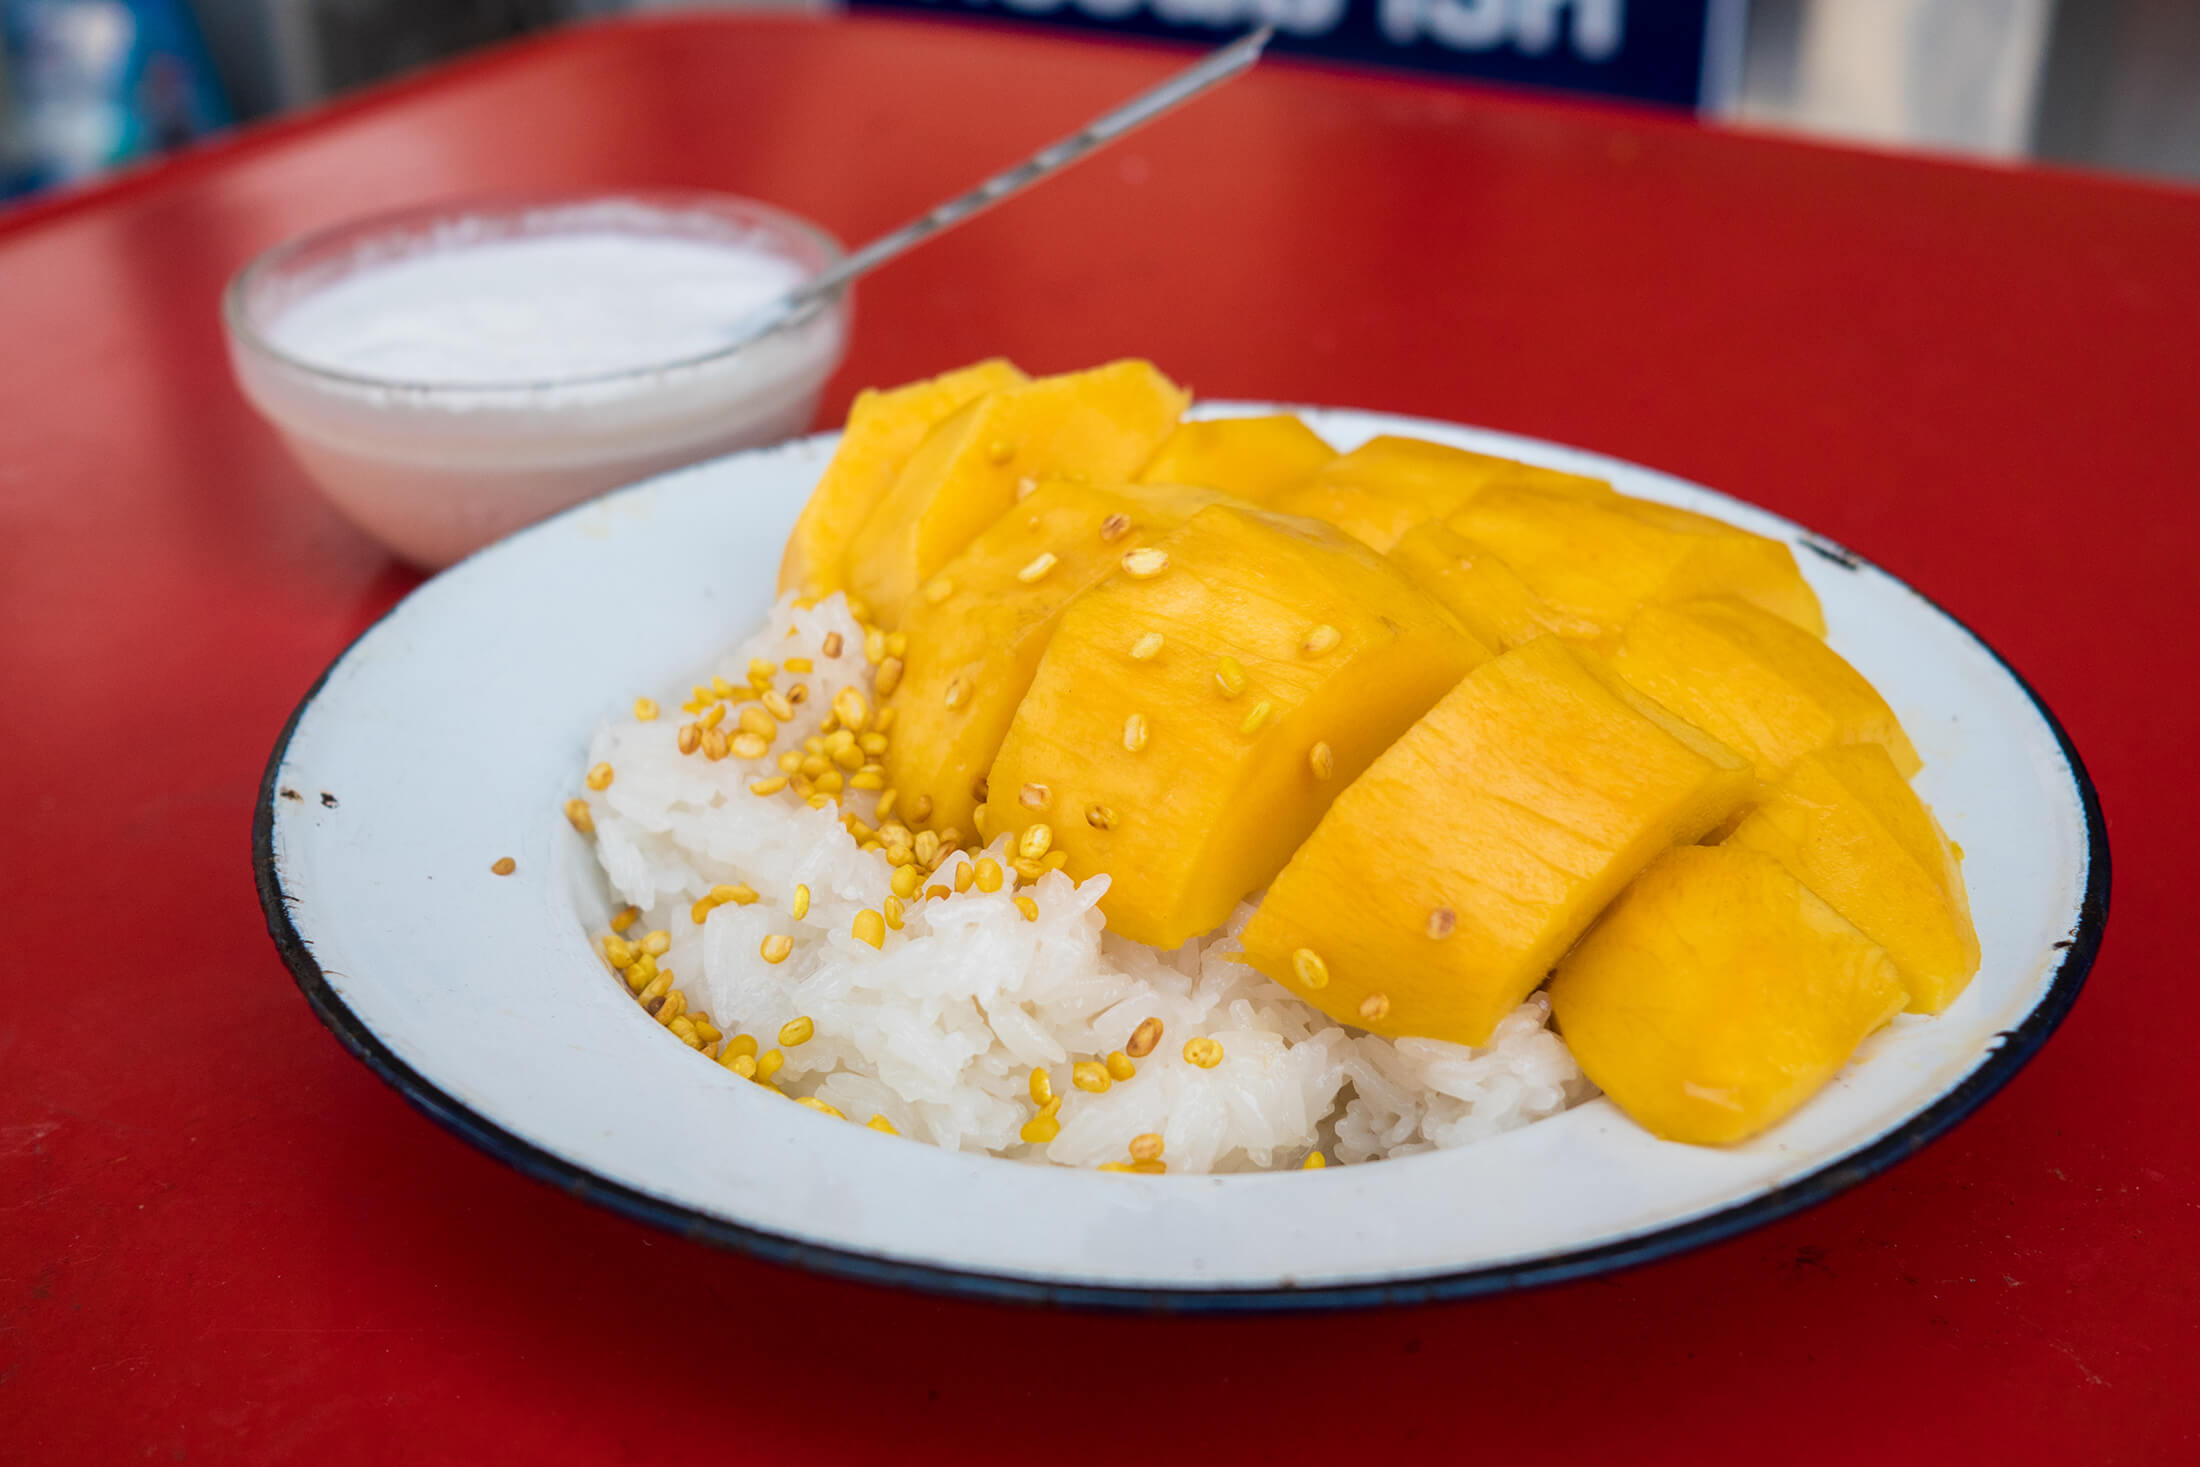 Thai mango sticky rice recipe authentic thai street food style forumfinder Gallery